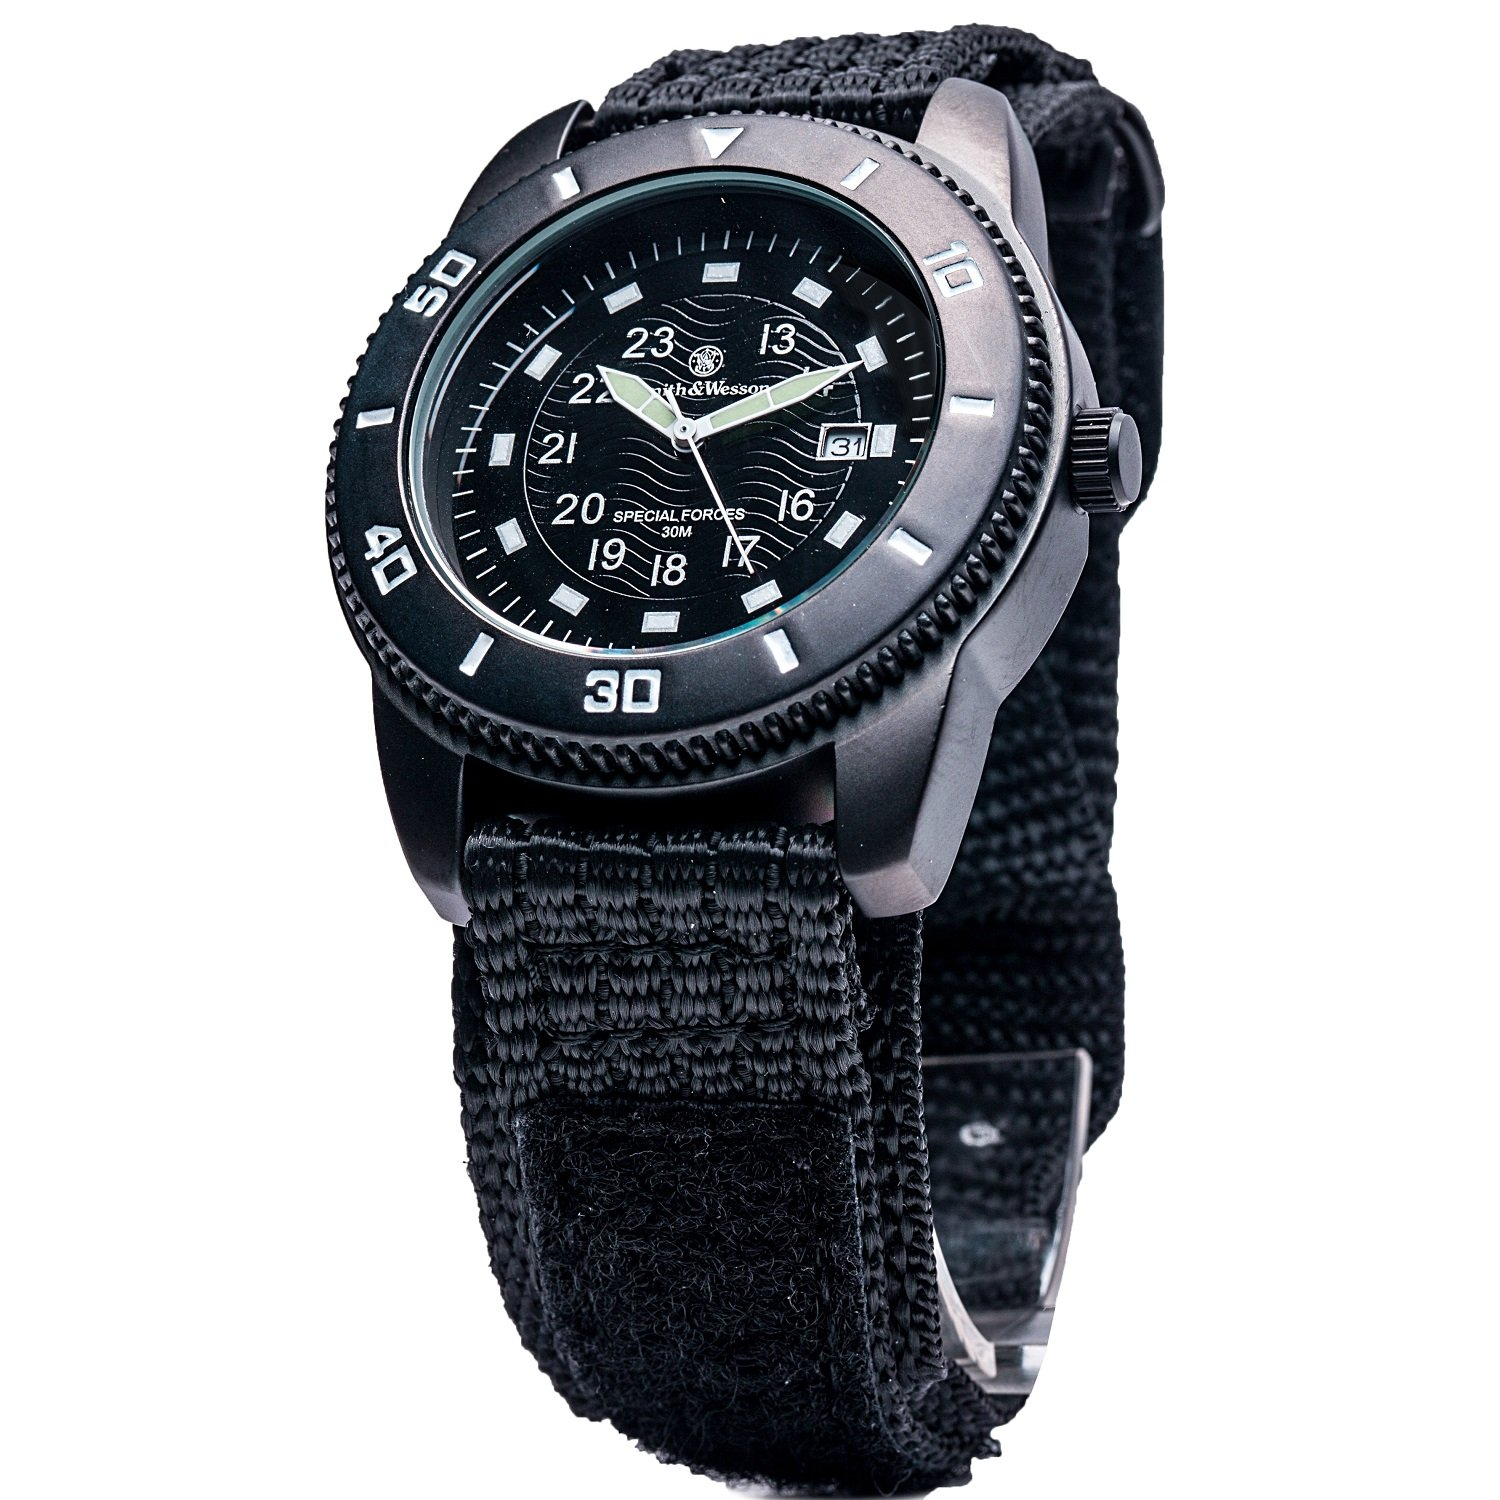 Smith & Wesson Uhr - Modell Commando WEEE-Reg.-Nr. DE93223650